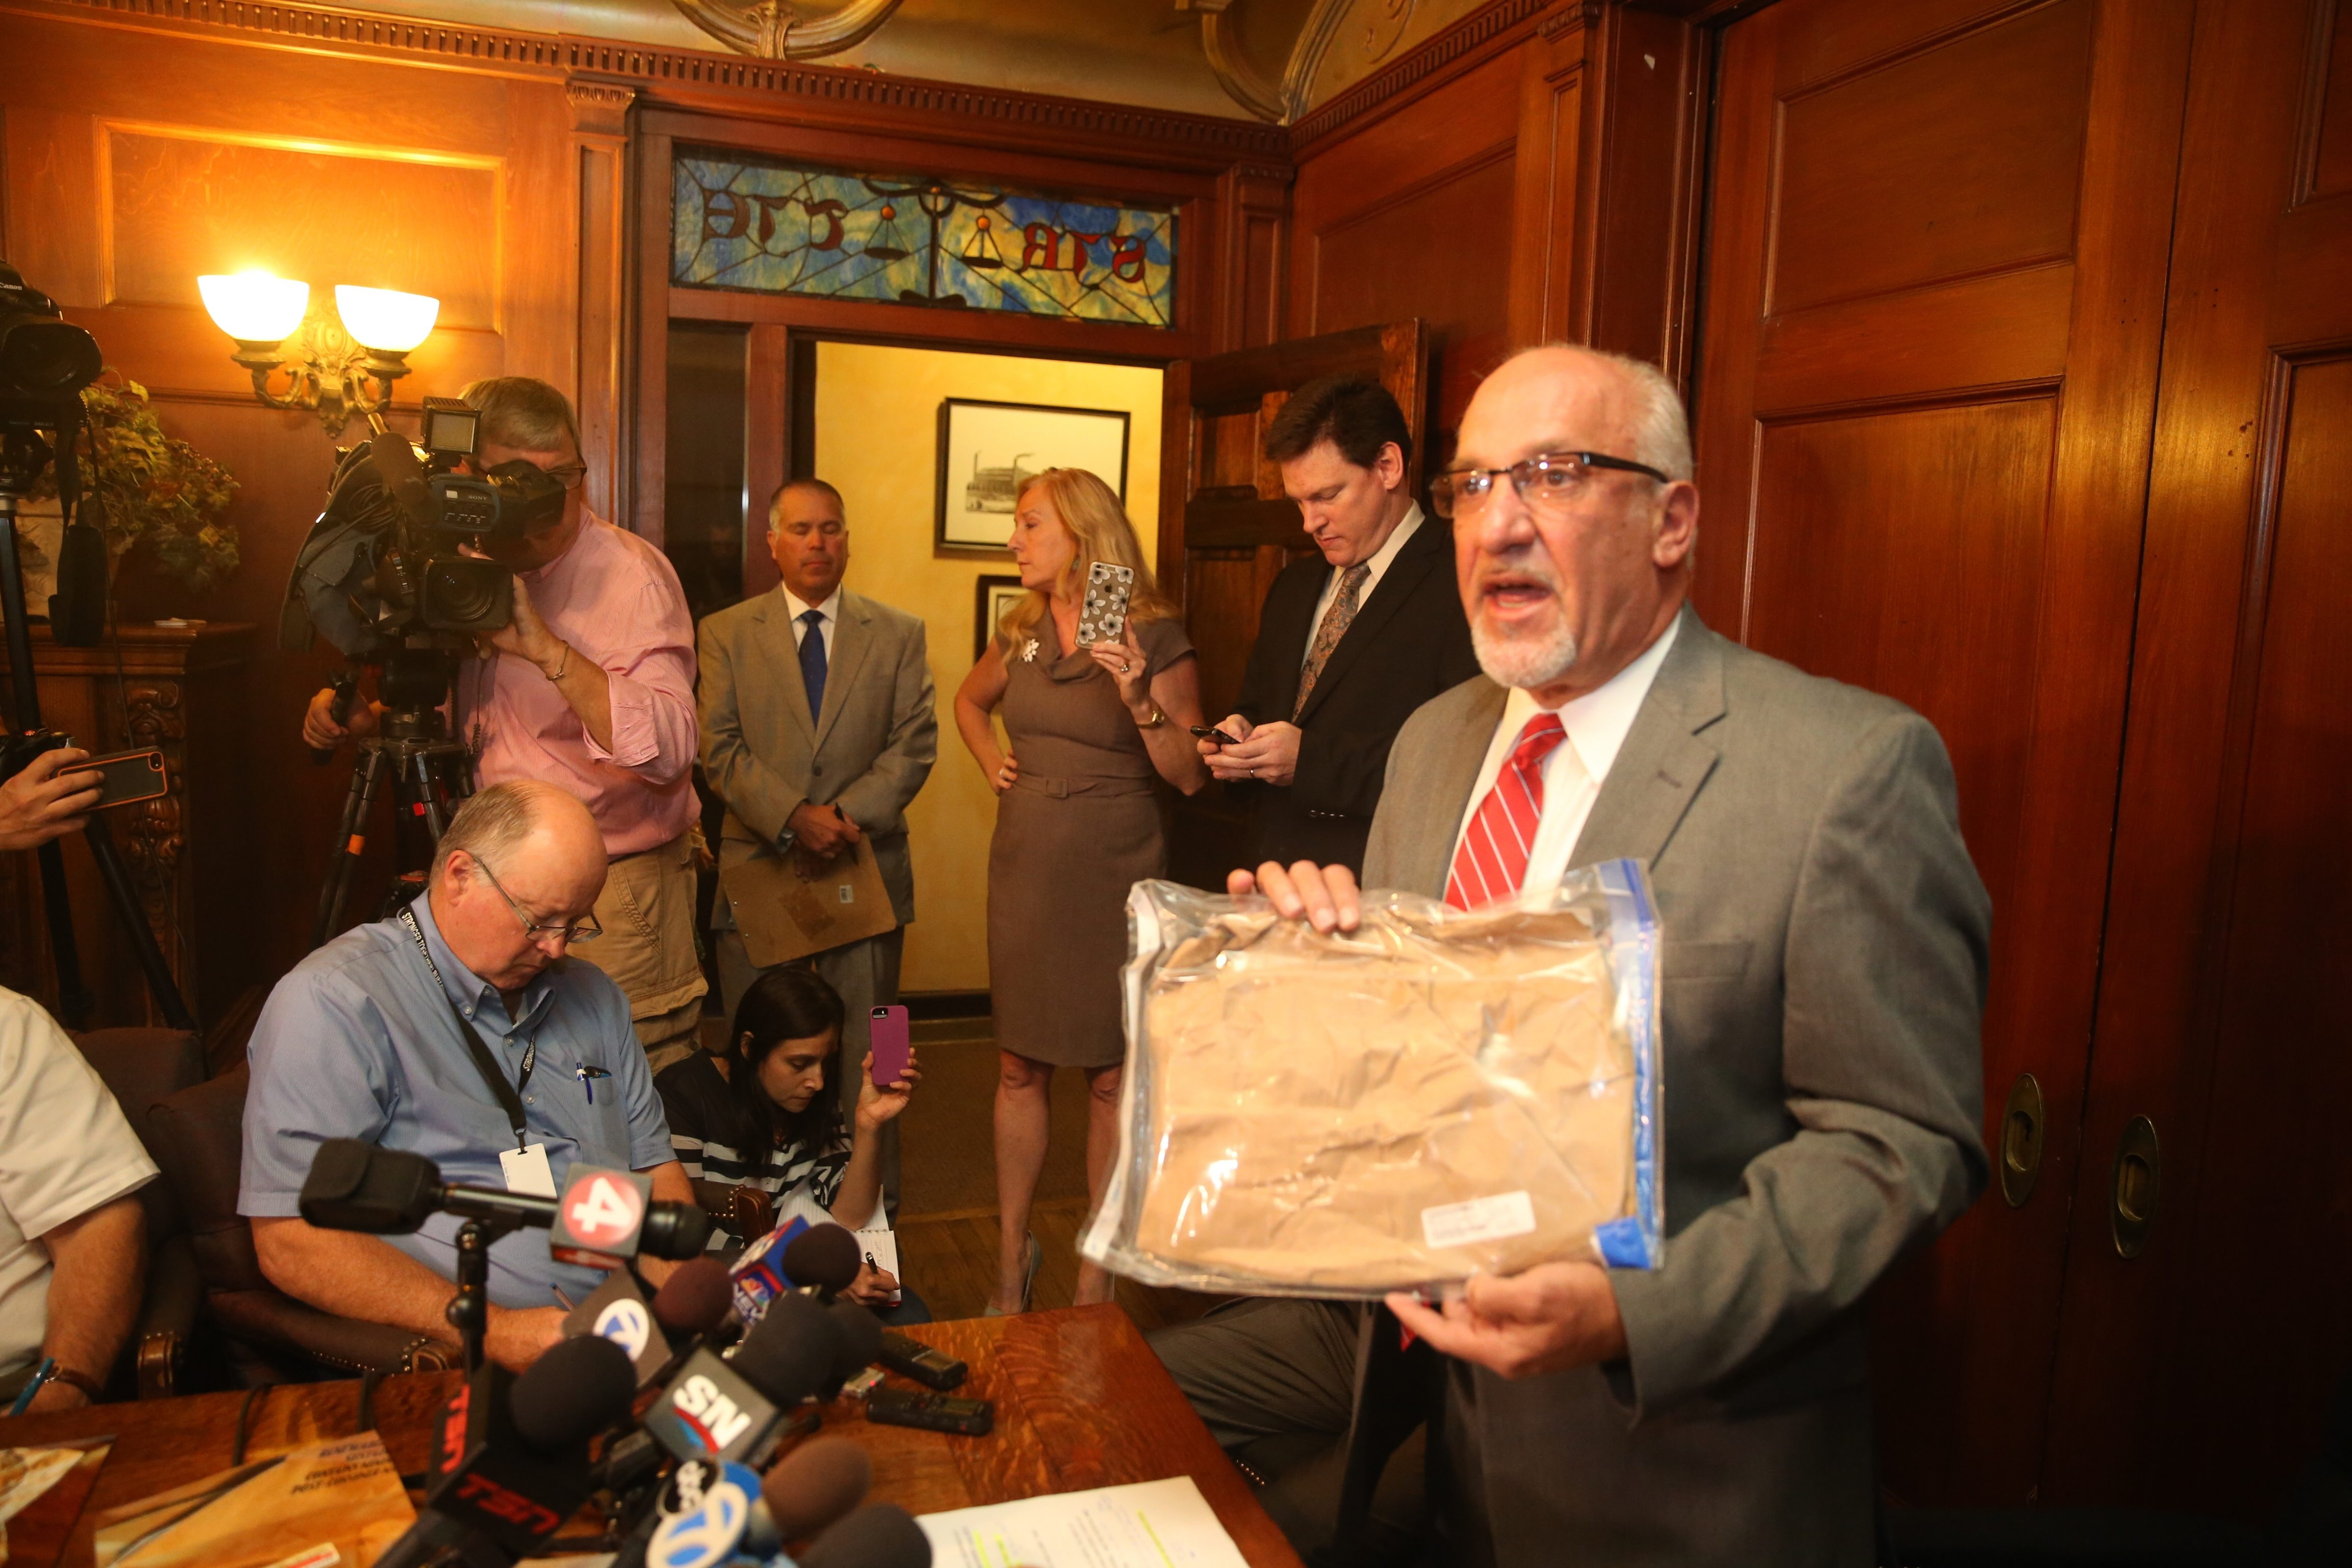 Thomas Eoannou, who represents the woman accusing hockey star Patrick Kane of rape, holds what he says is the evidence bag in the case. (John Hickey/Buffalo News)